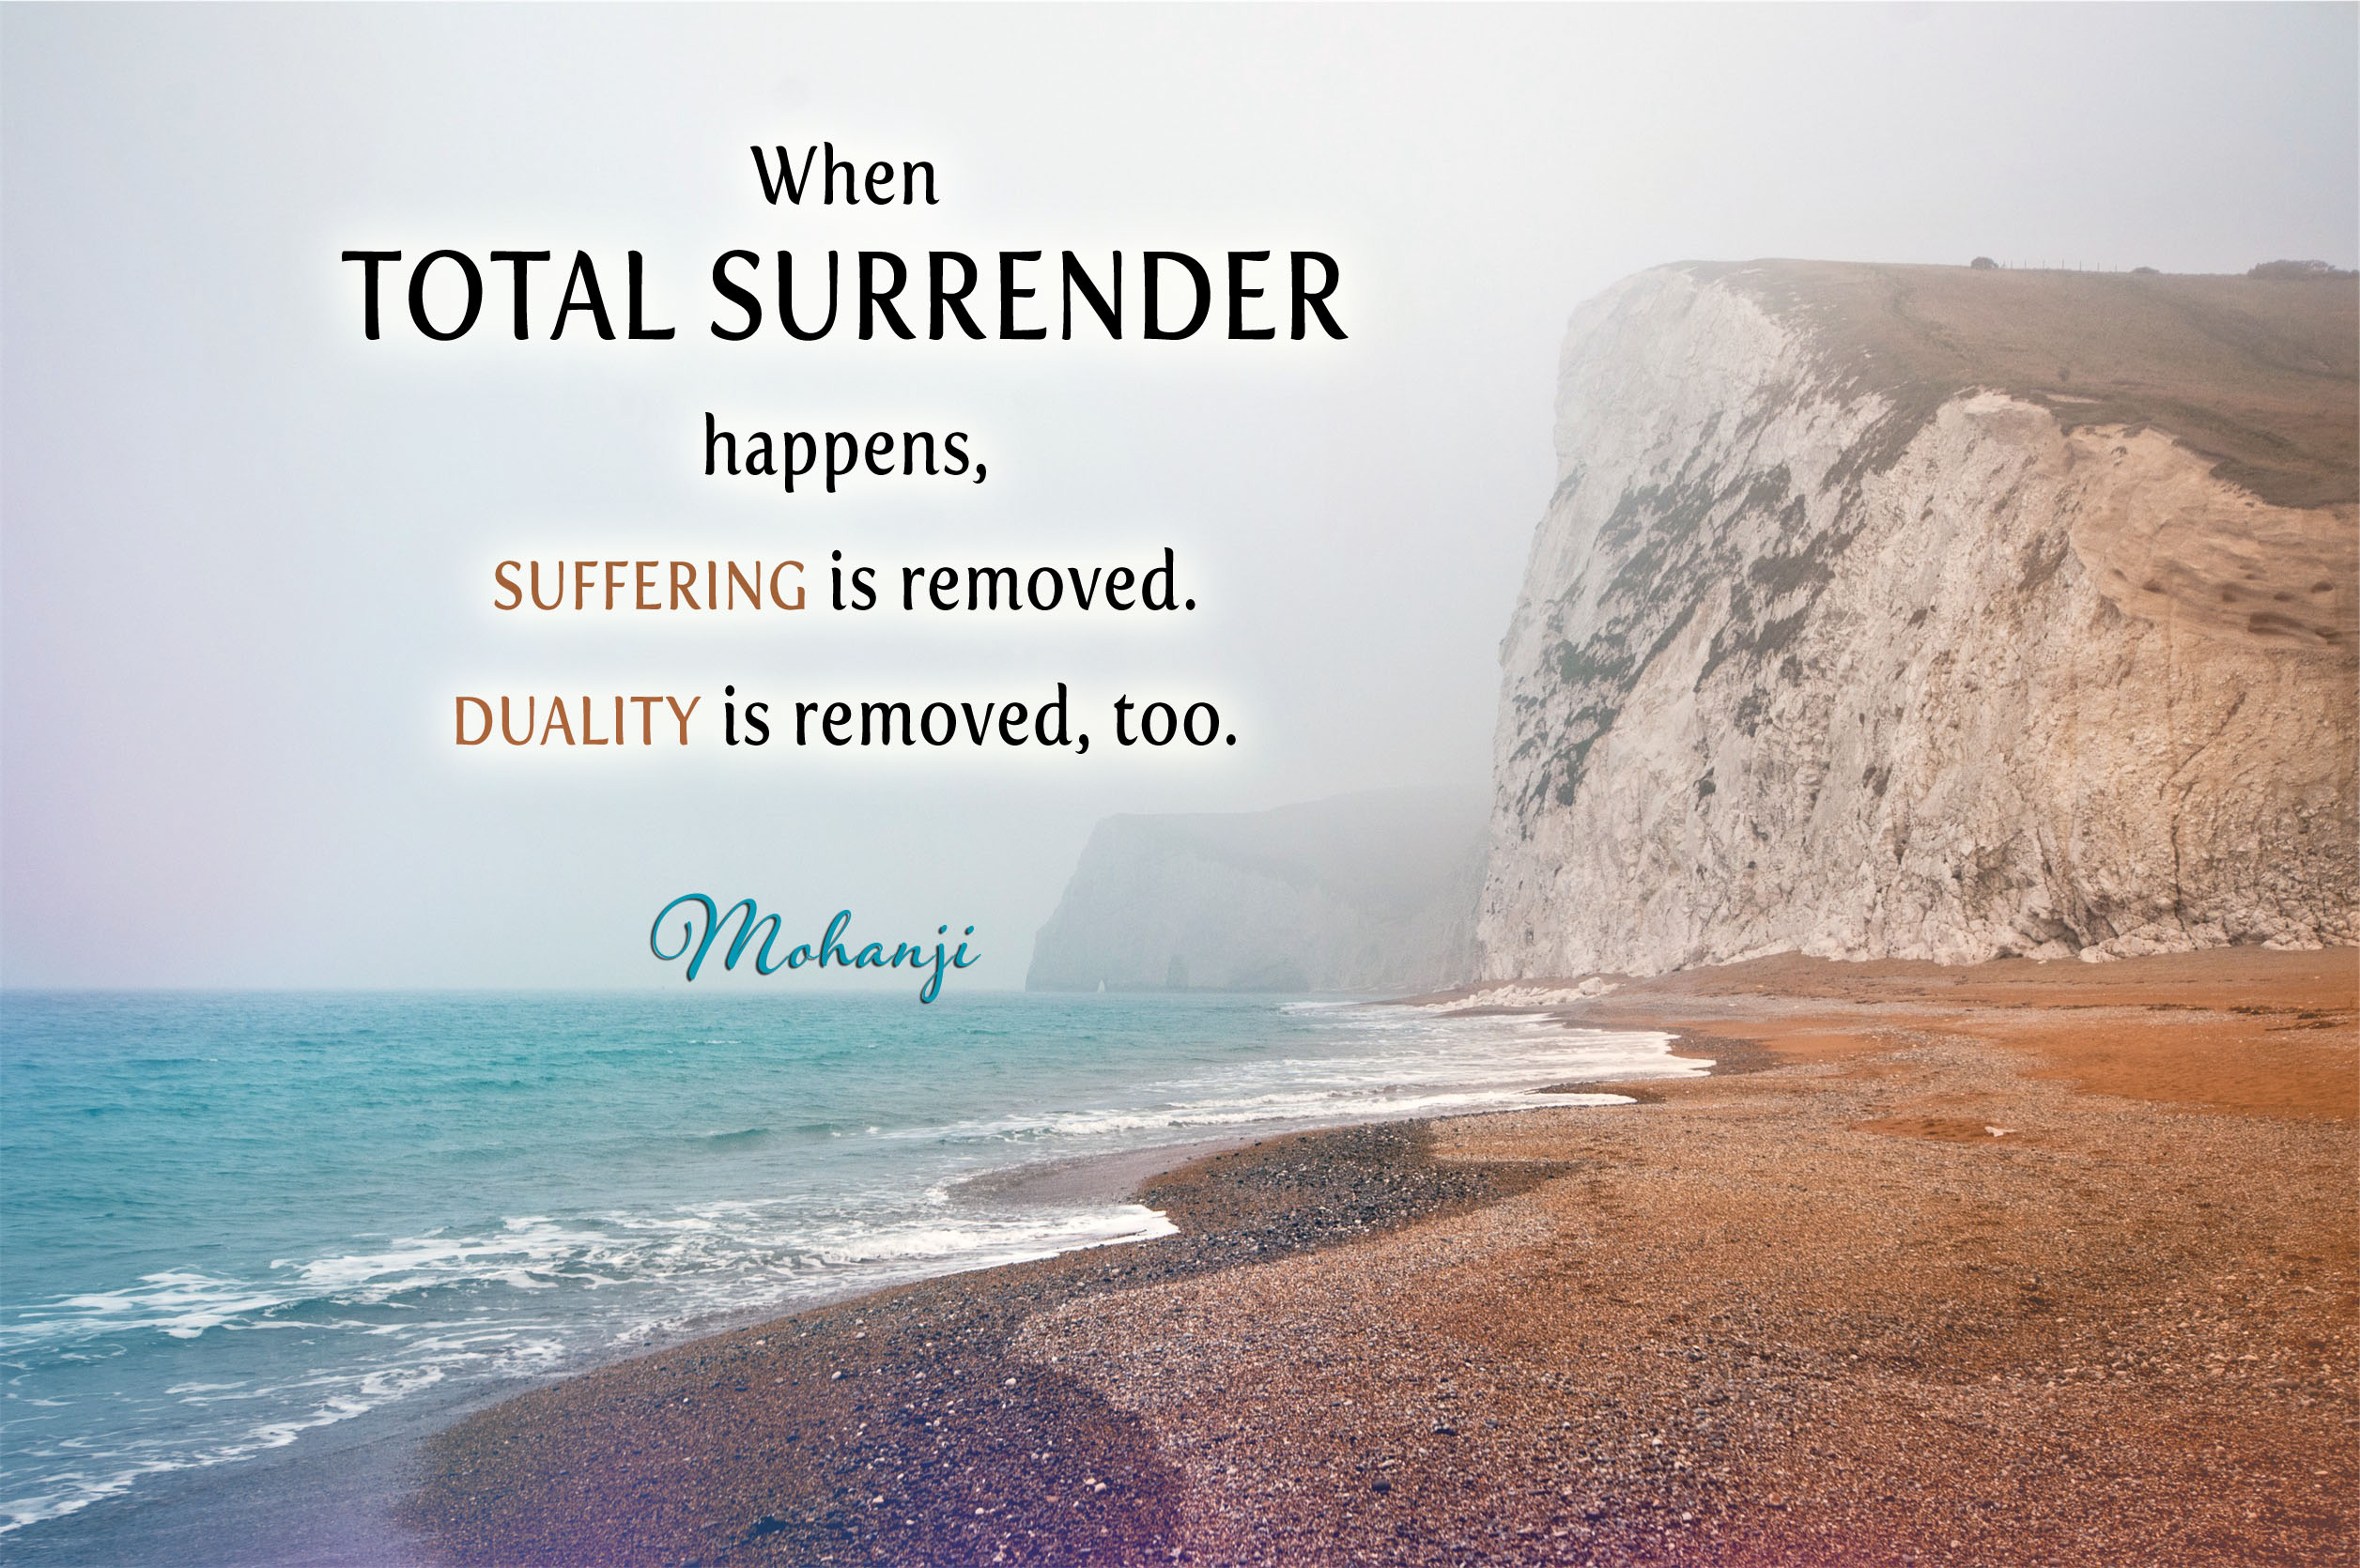 mohanji-quote-when-total-surrender-happens-suffering-is-removed.jpg